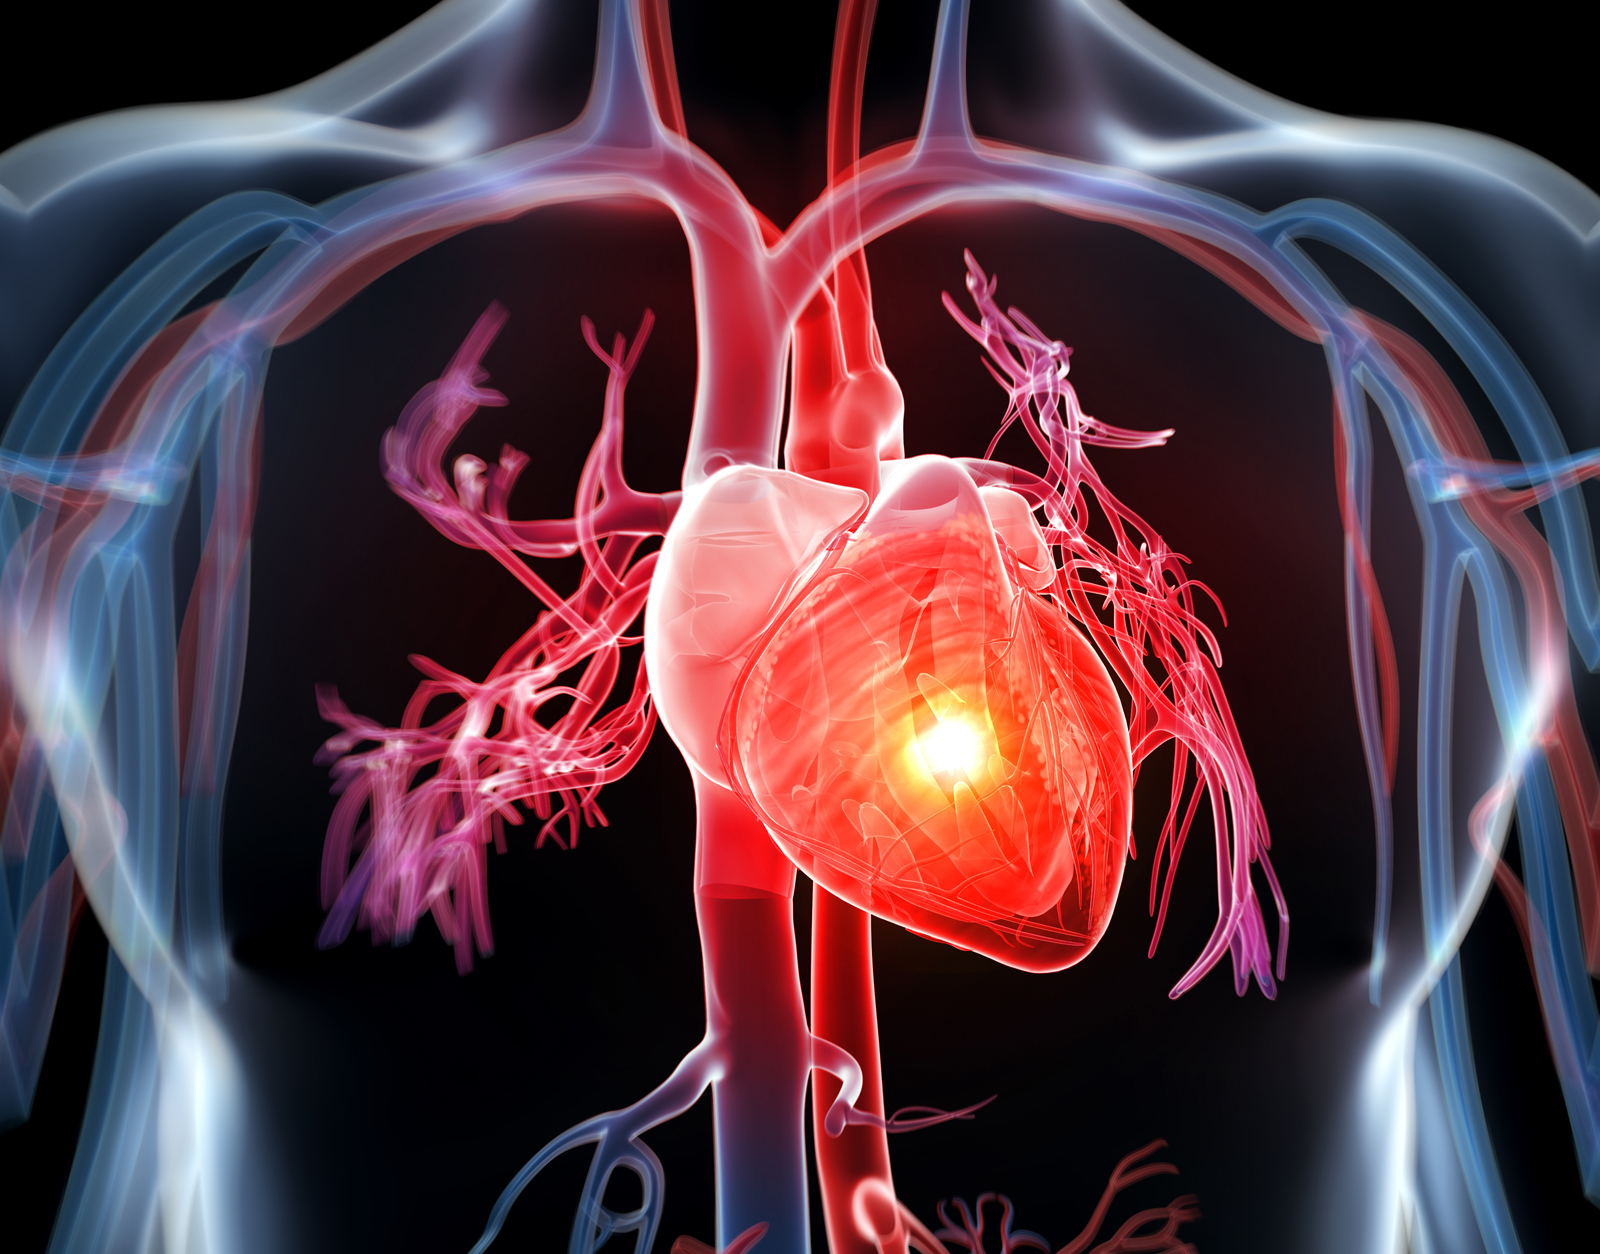 You are more prone to heart disease if your family members are heart patients